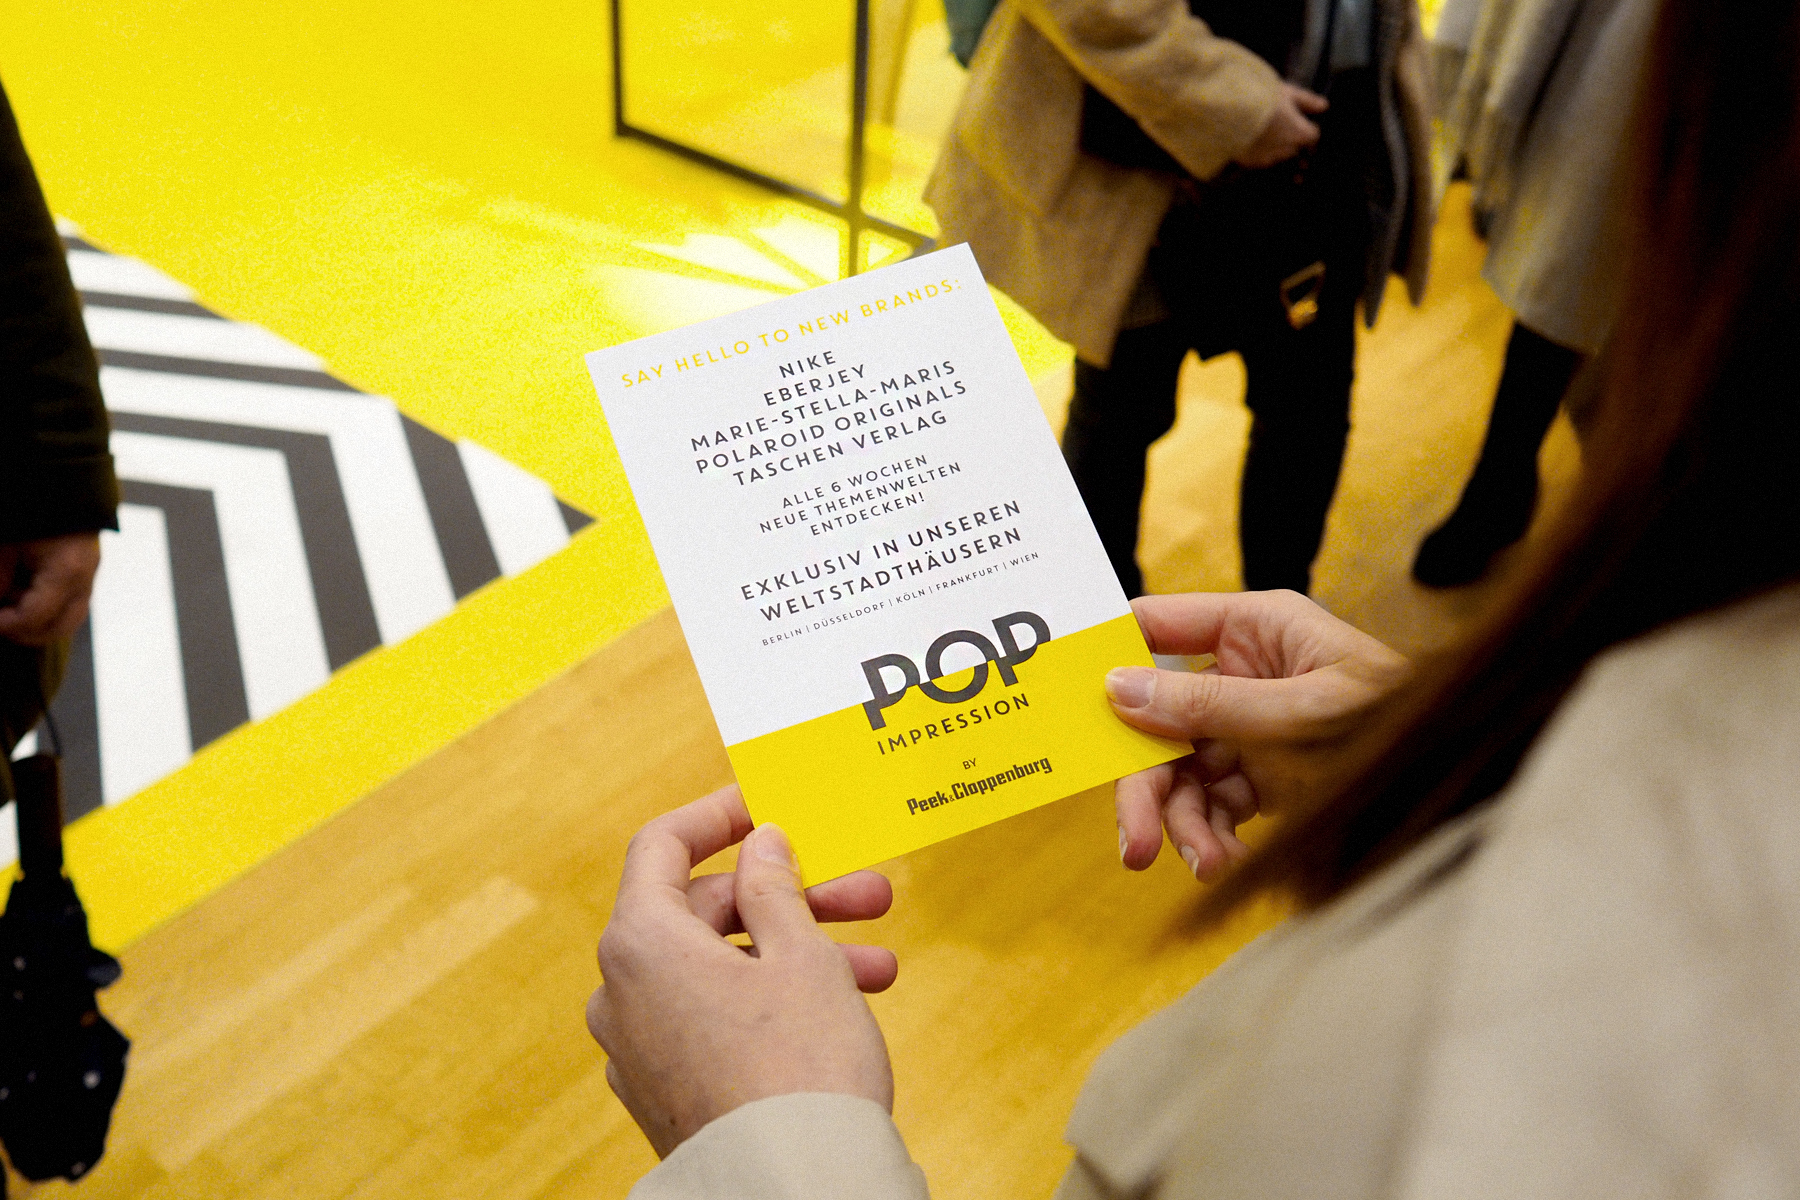 POP IMPRESSION by P&C Düsseldorf launch opening event polaroid originals eberjey marie-stella-maris taschen verlag nike popupstore popup peek&cloppenburg catsanddogsblog ricarda schernus modeblog fashionblogger dus nrw 8